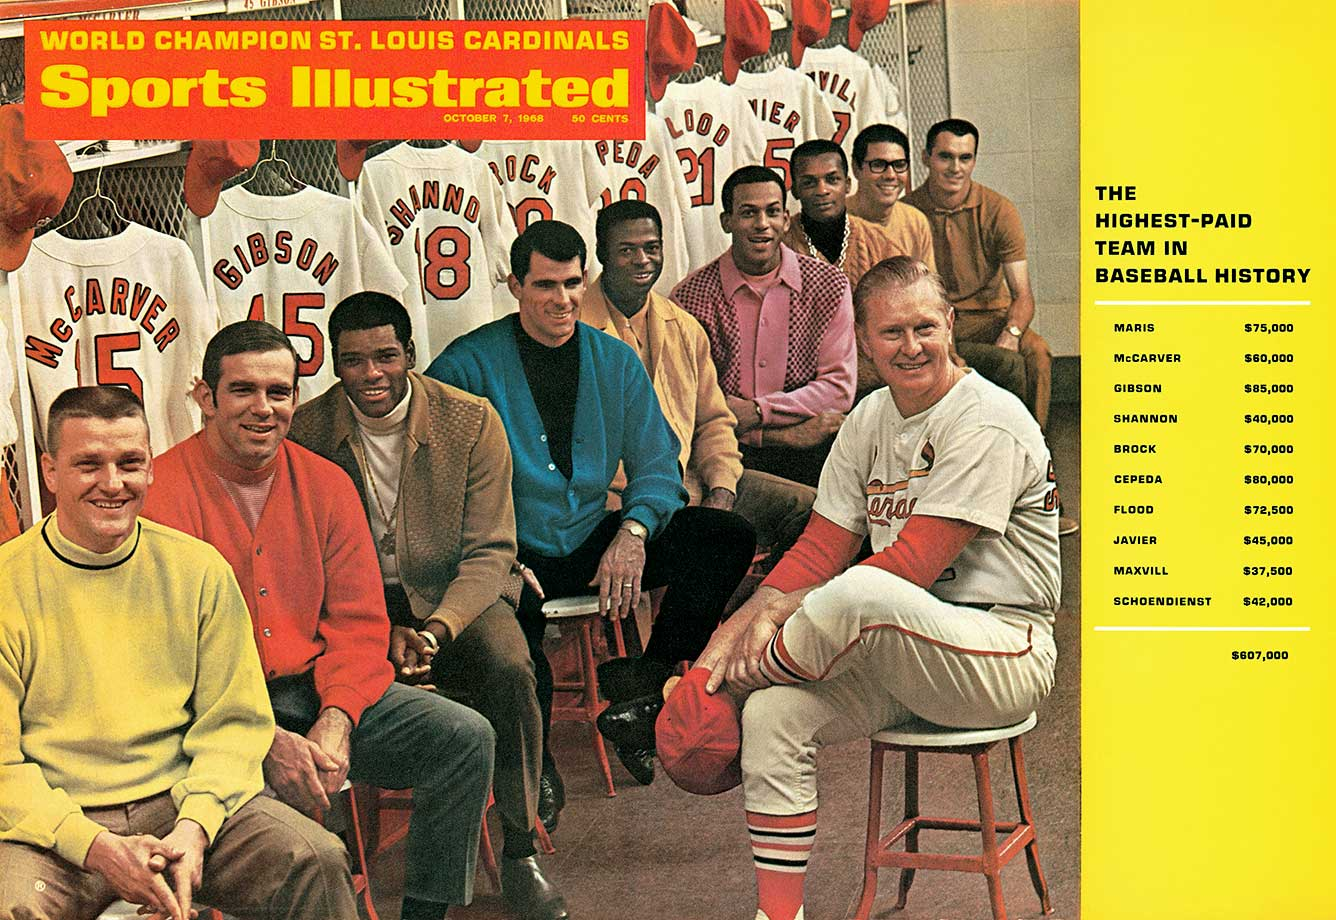 October 7, 1968 Sports Illustrated cover